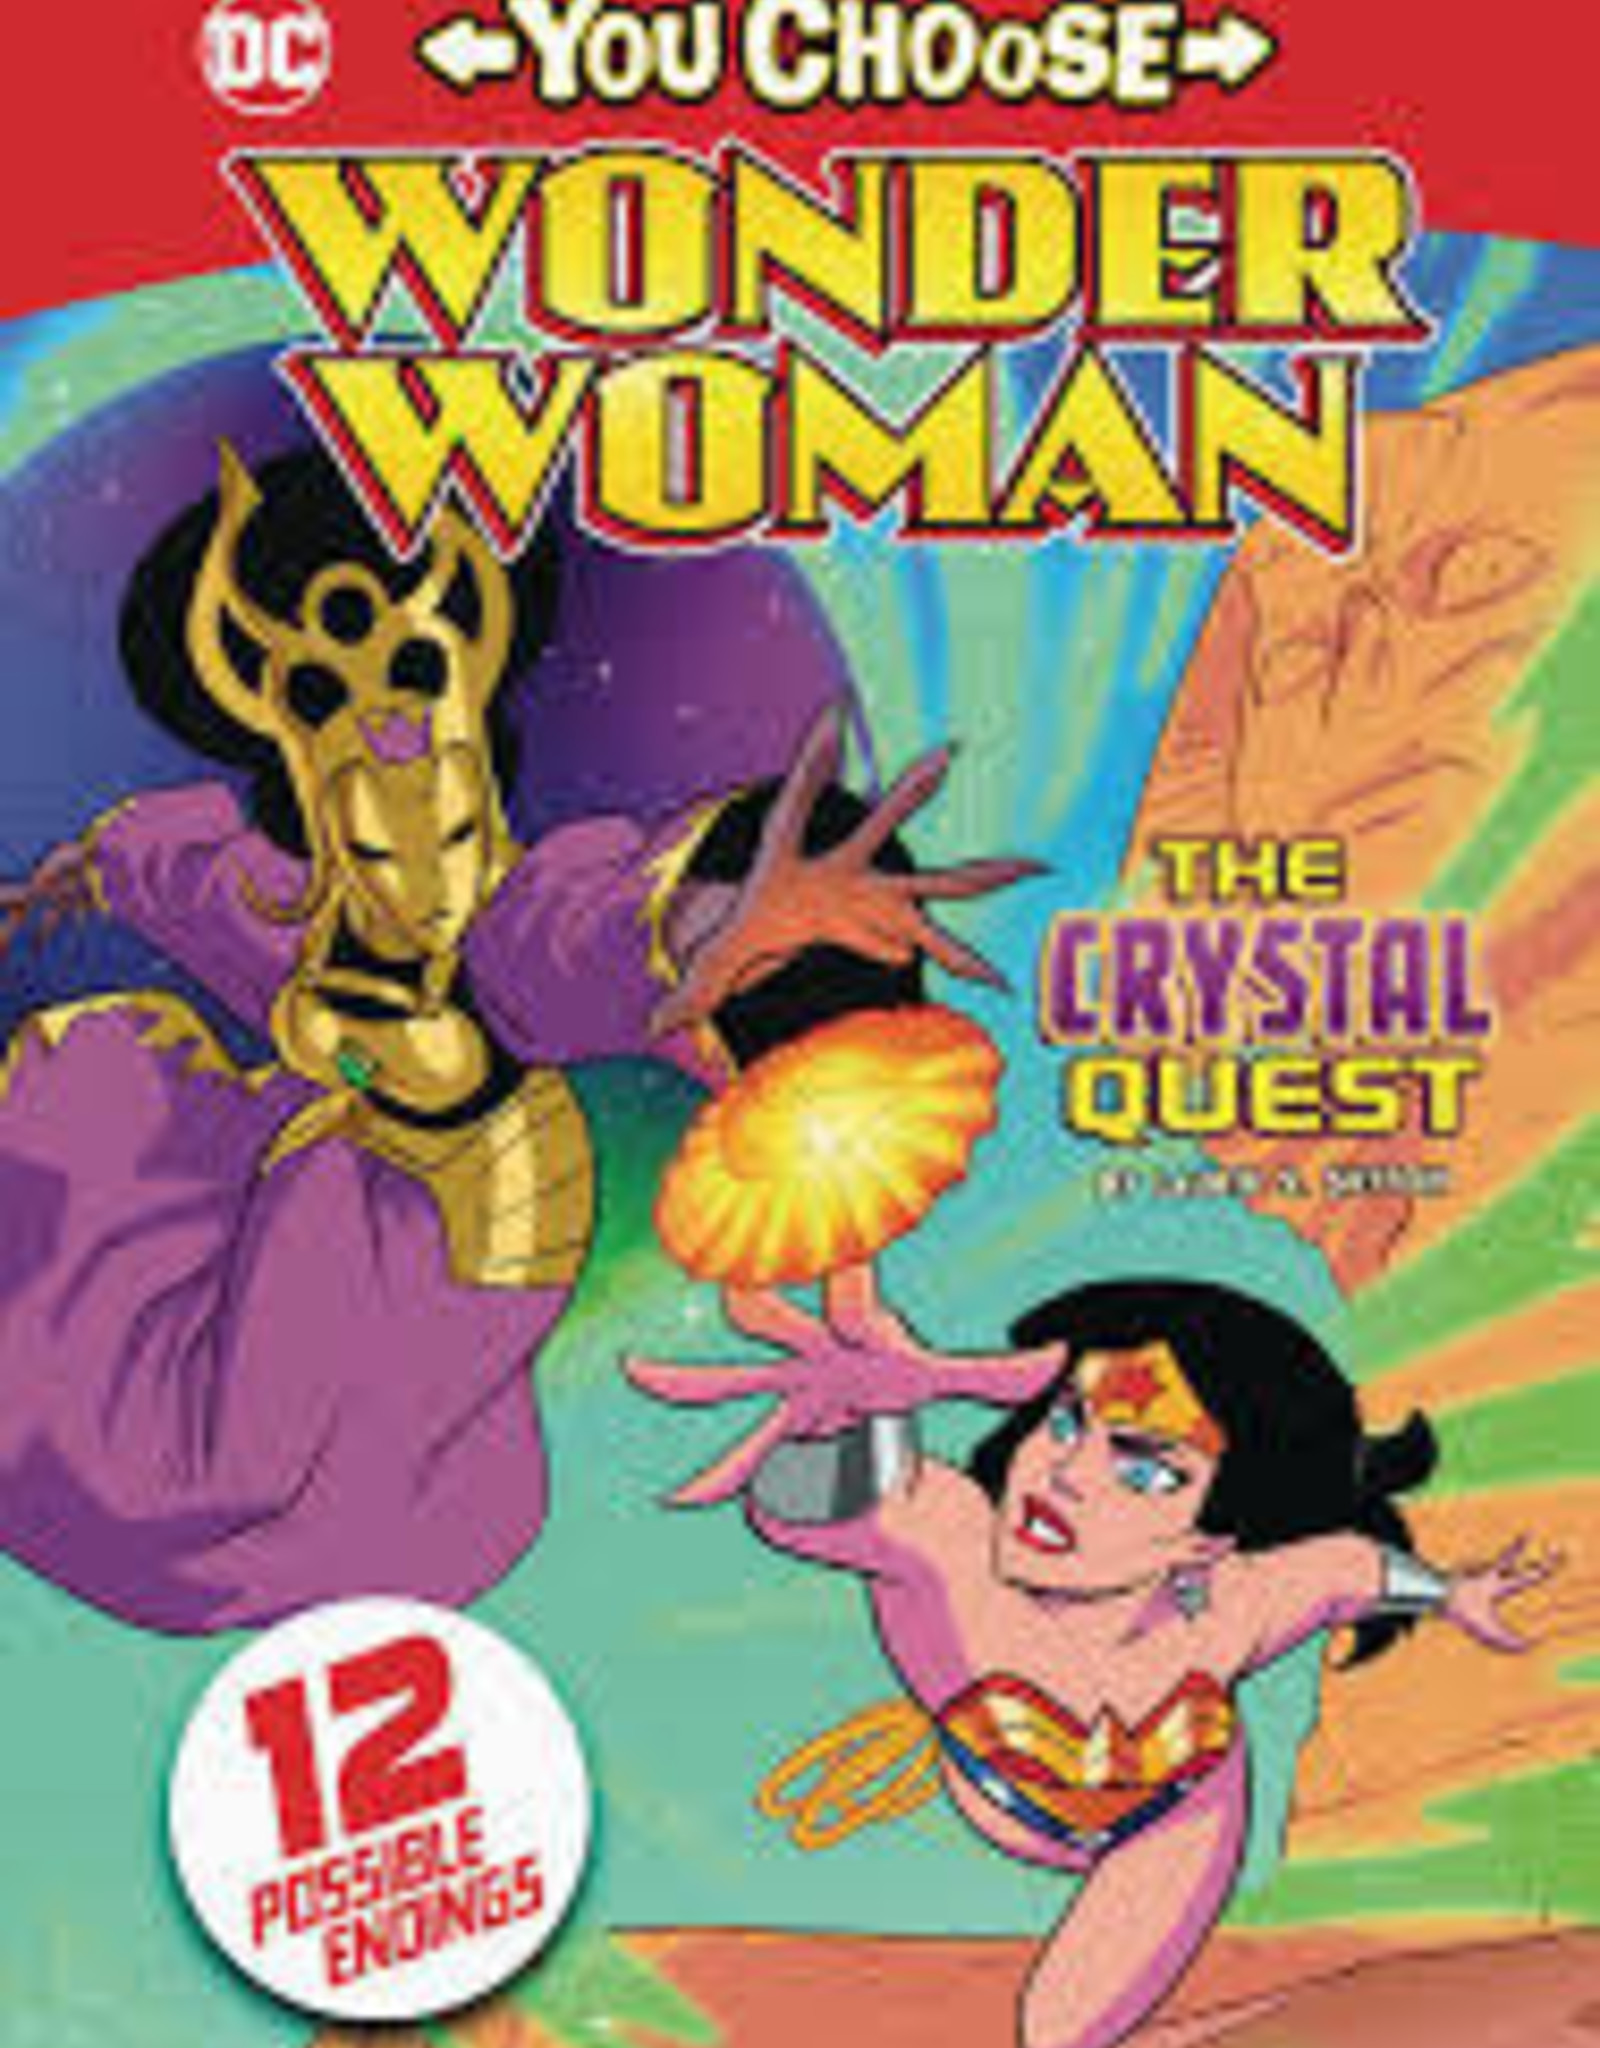 STONE ARCH BOOKS WONDER WOMAN YOU CHOOSE SC CRYSTAL QUEST